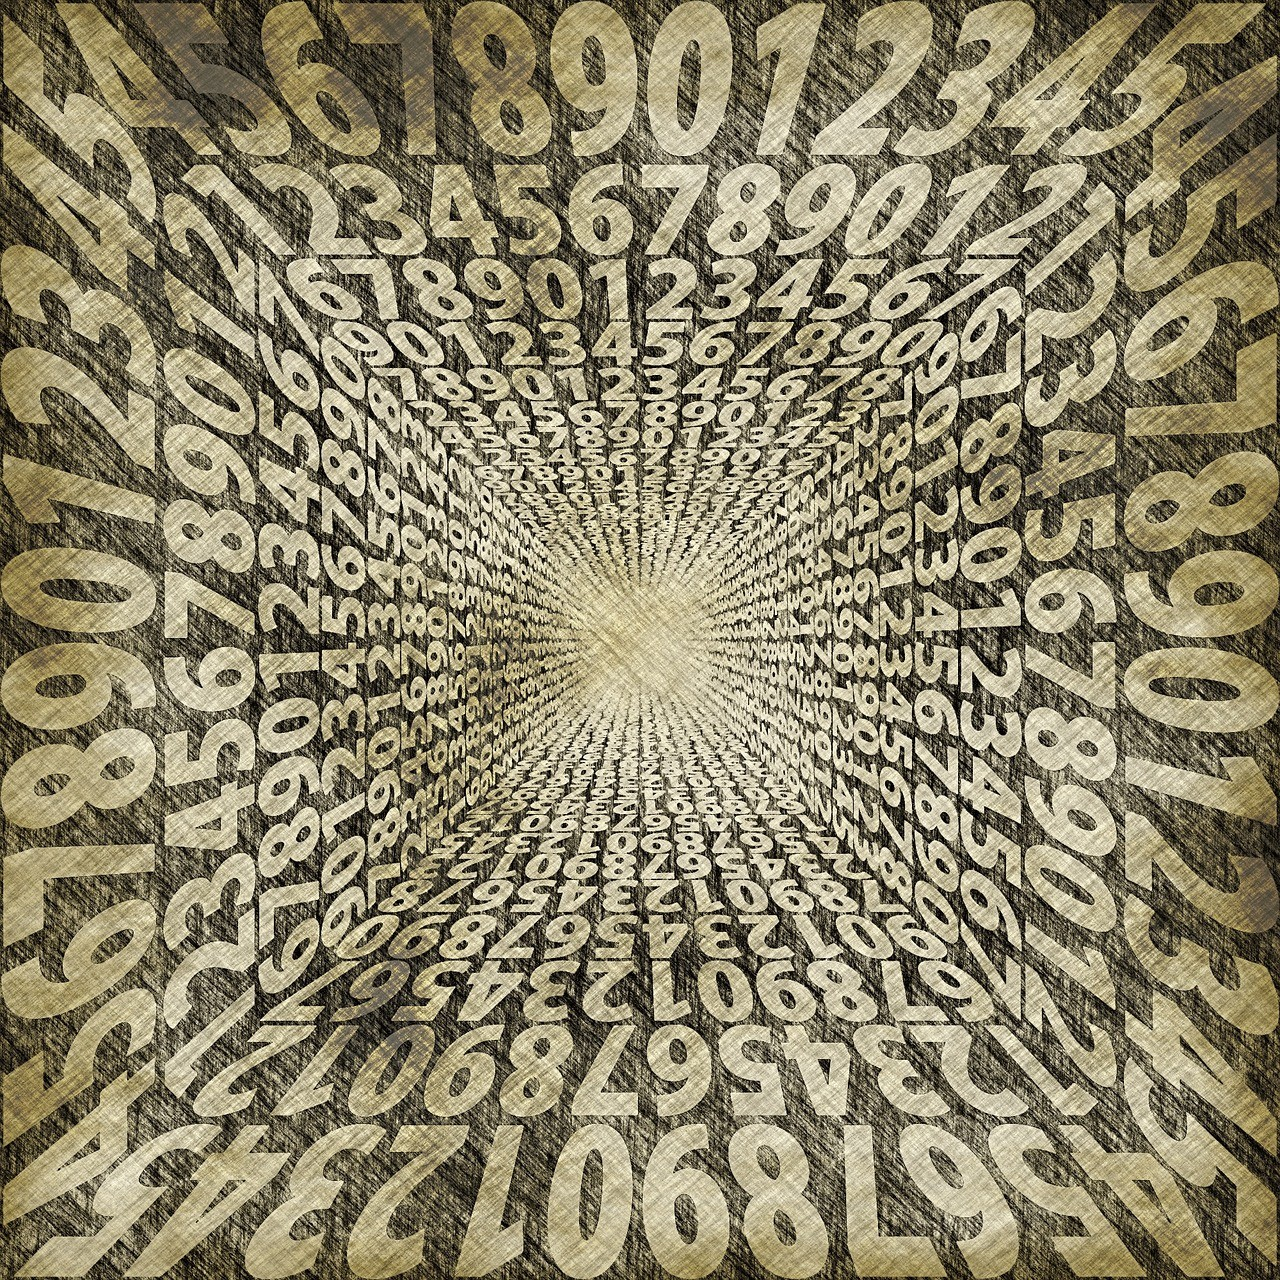 Numerologist in India, numerology with name, numerology with date of birth, famous numerologist in India, best numerologist in India, Top numerologist in India, Numerology Specialist